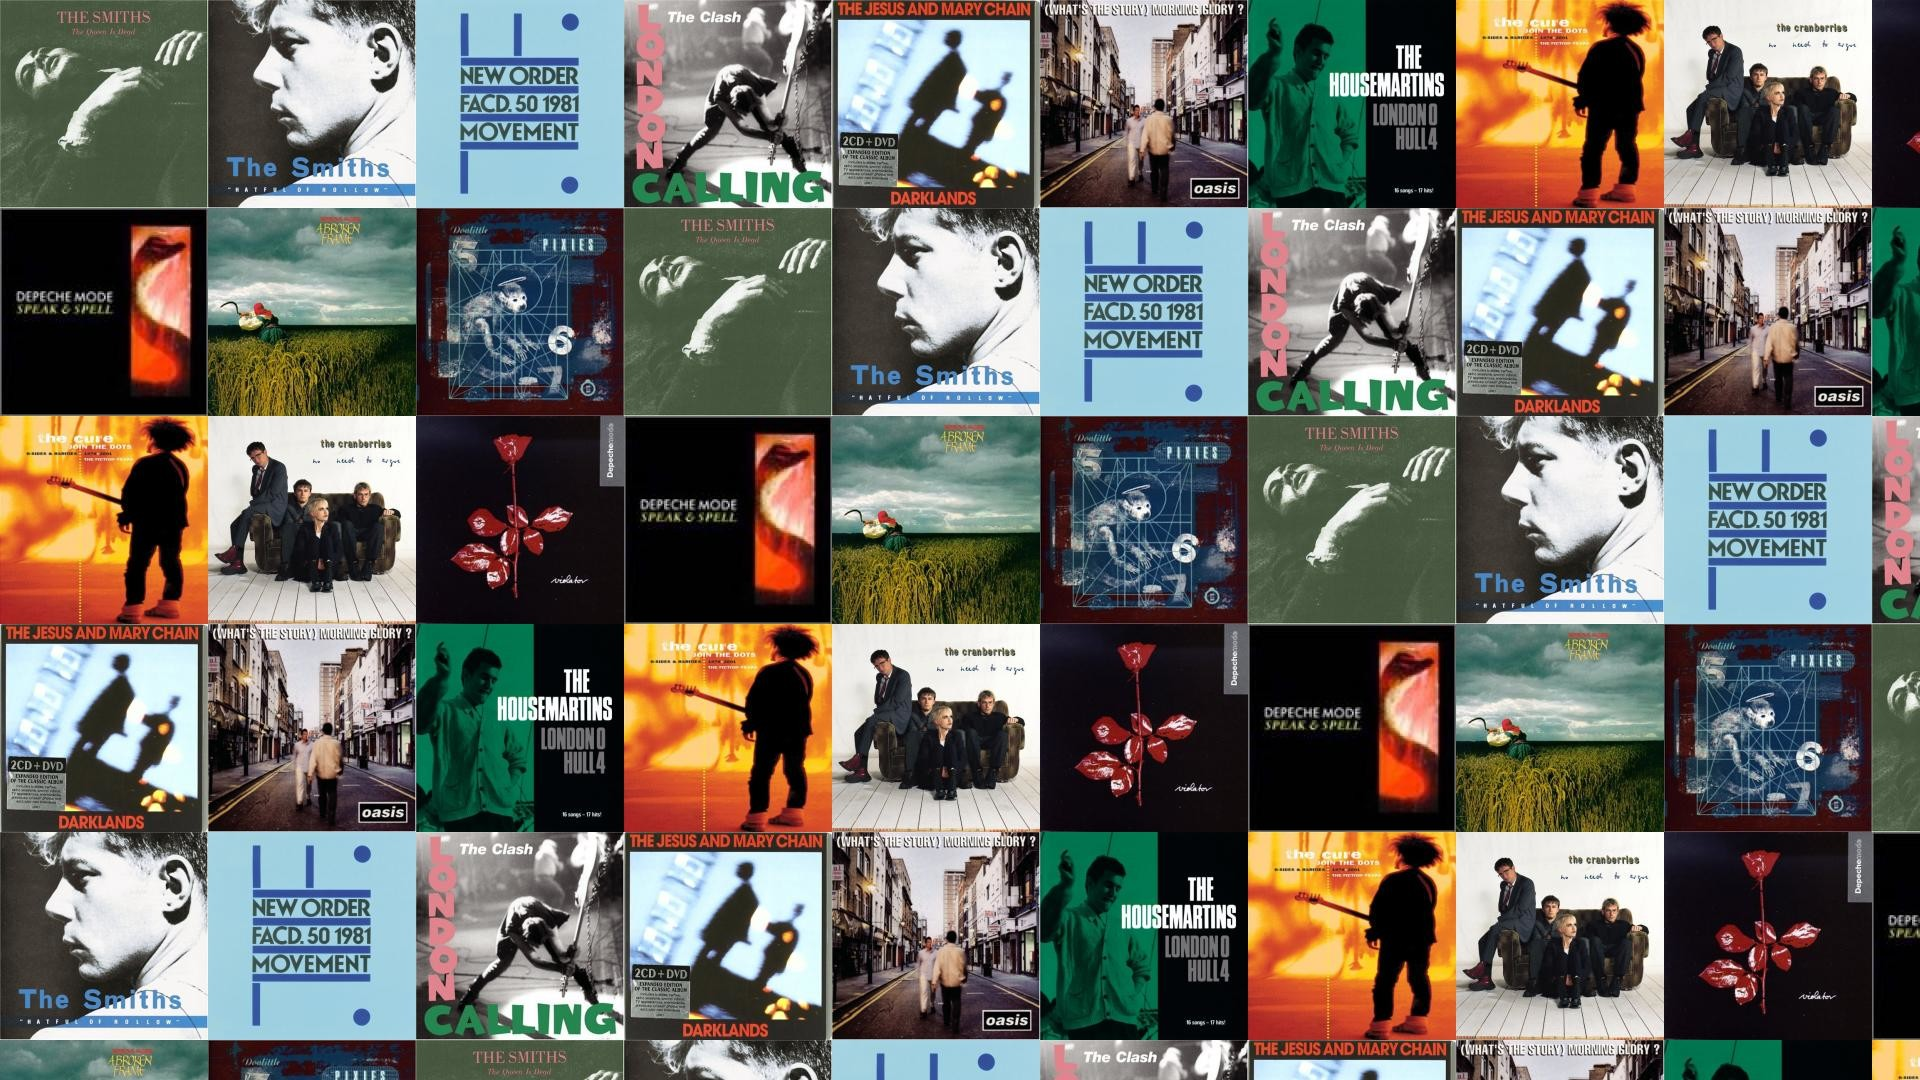 Download this free wallpaper with images of The Smiths – The Queen Is Dead, The  Smiths – Hatful Of Hollow, New Order – Movement, The Clash – London  Calling, …